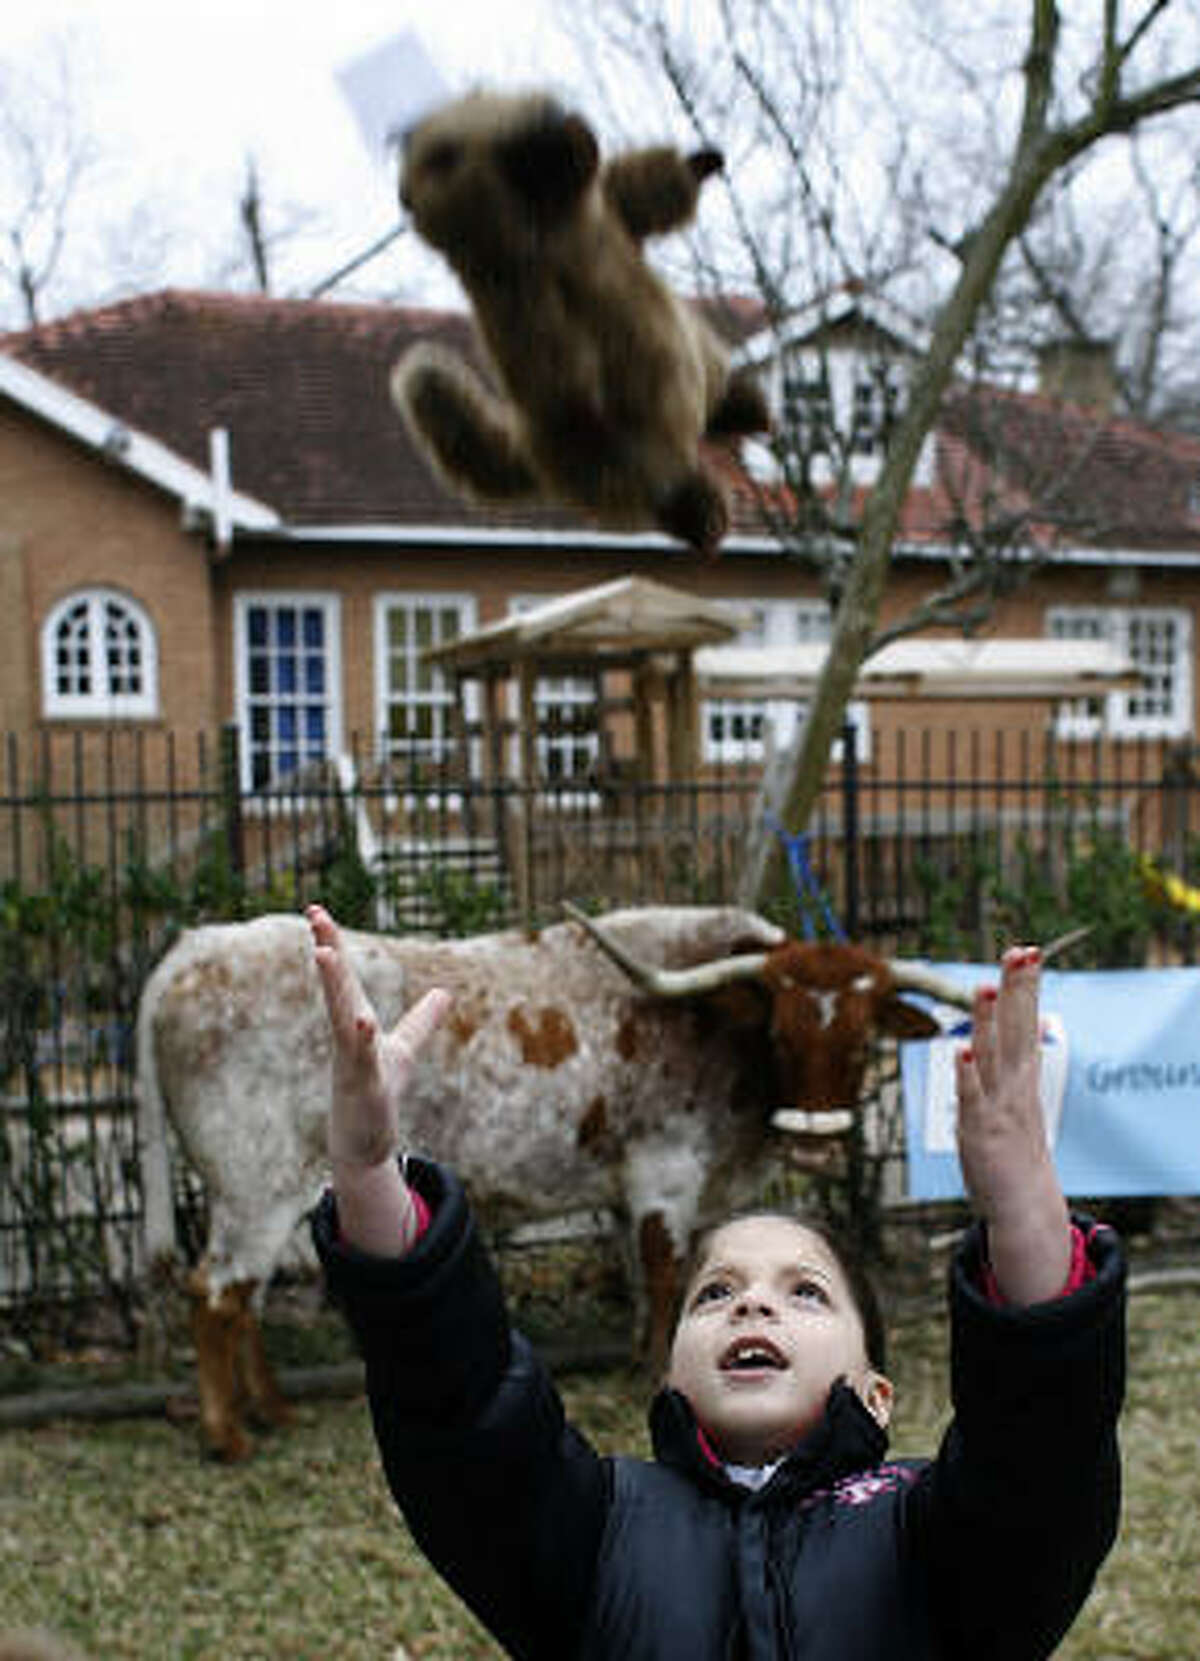 Serena Reyna, 7, a first grader at MacGregor Elementary School tosses up a plush groundhog toy near Alamo the longhorn.